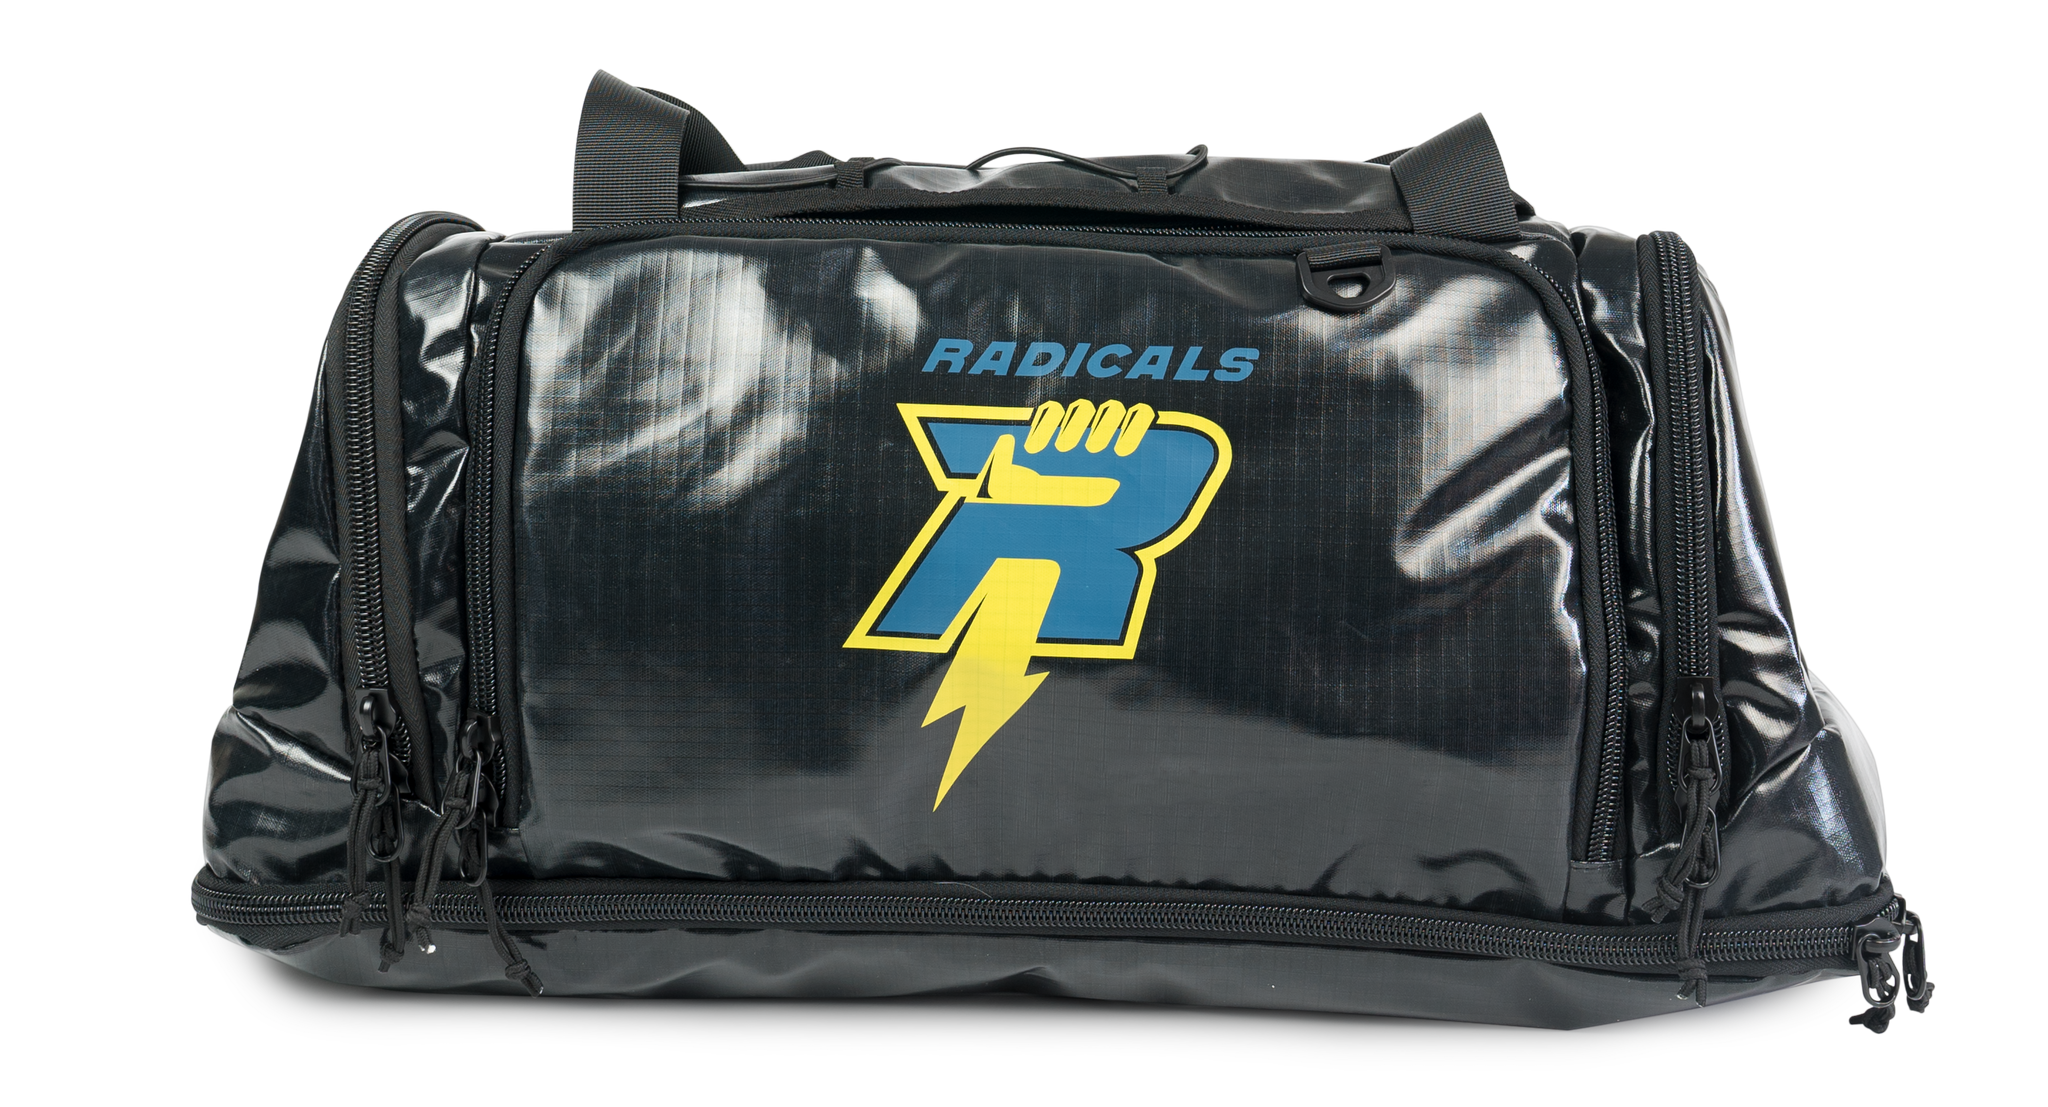 Radicals Greatest Ultimate Bag